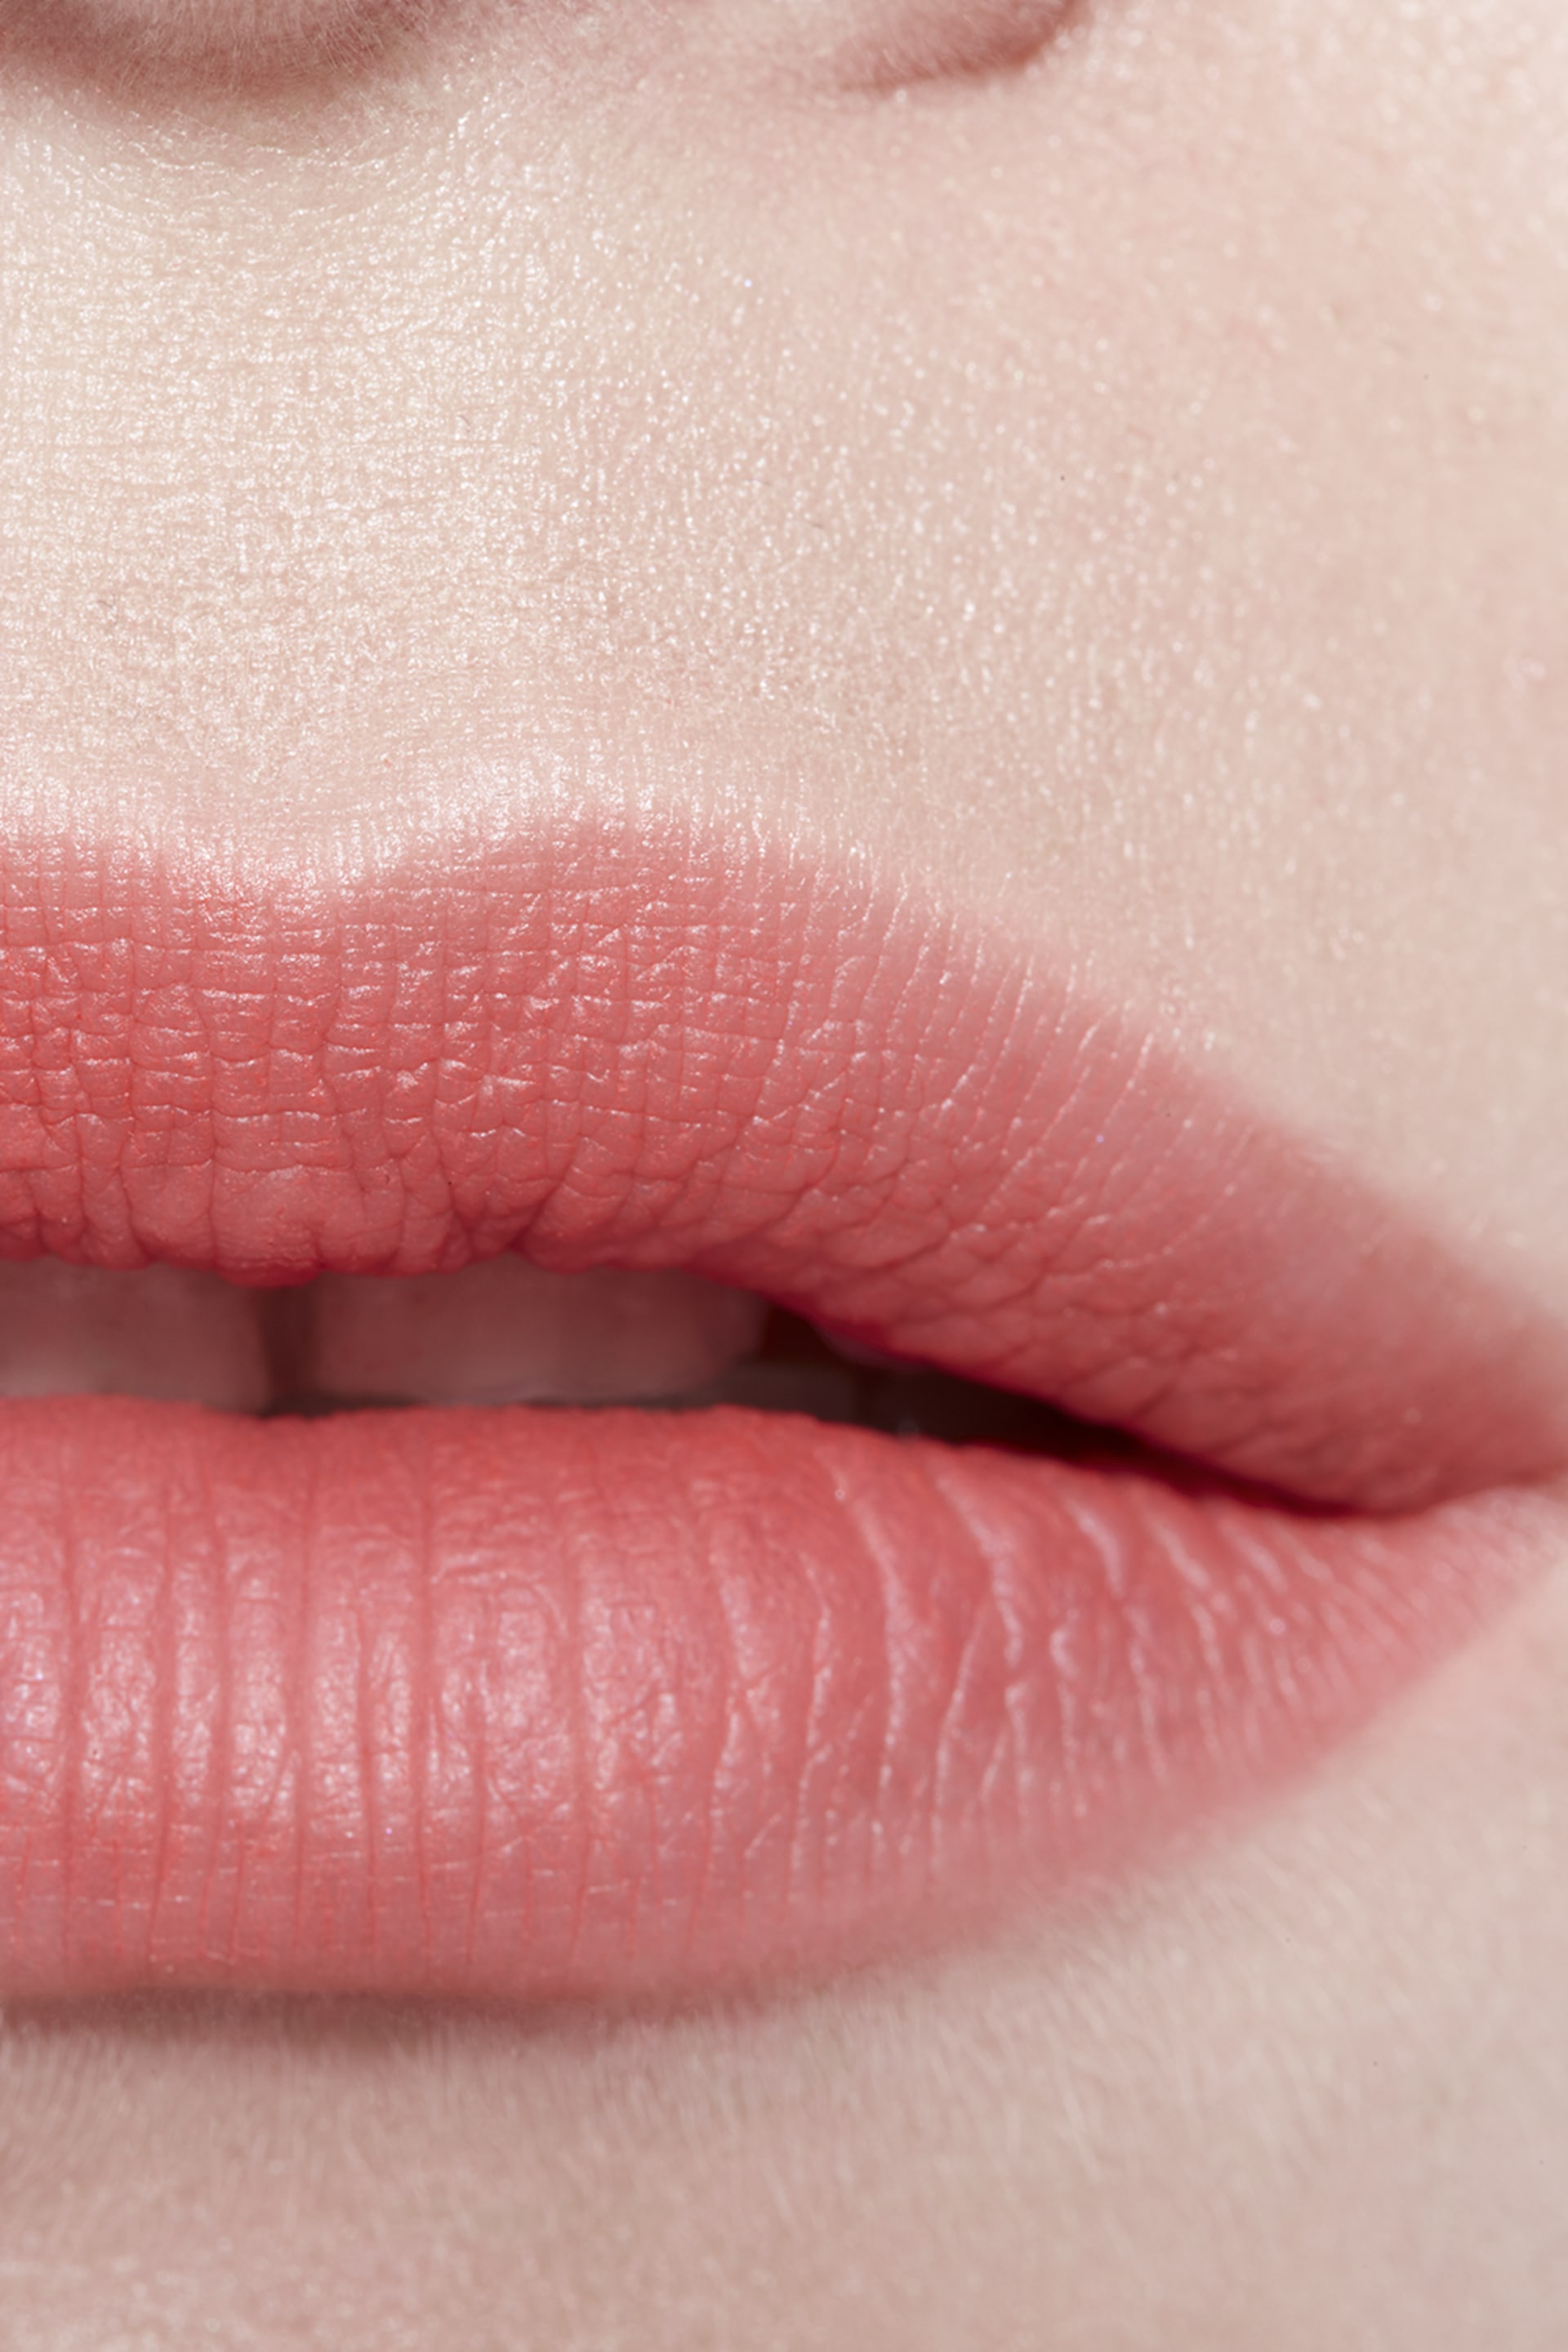 Application makeup visual 3 - ROUGE COCO LIP BLUSH 414 - TENDER ROSE